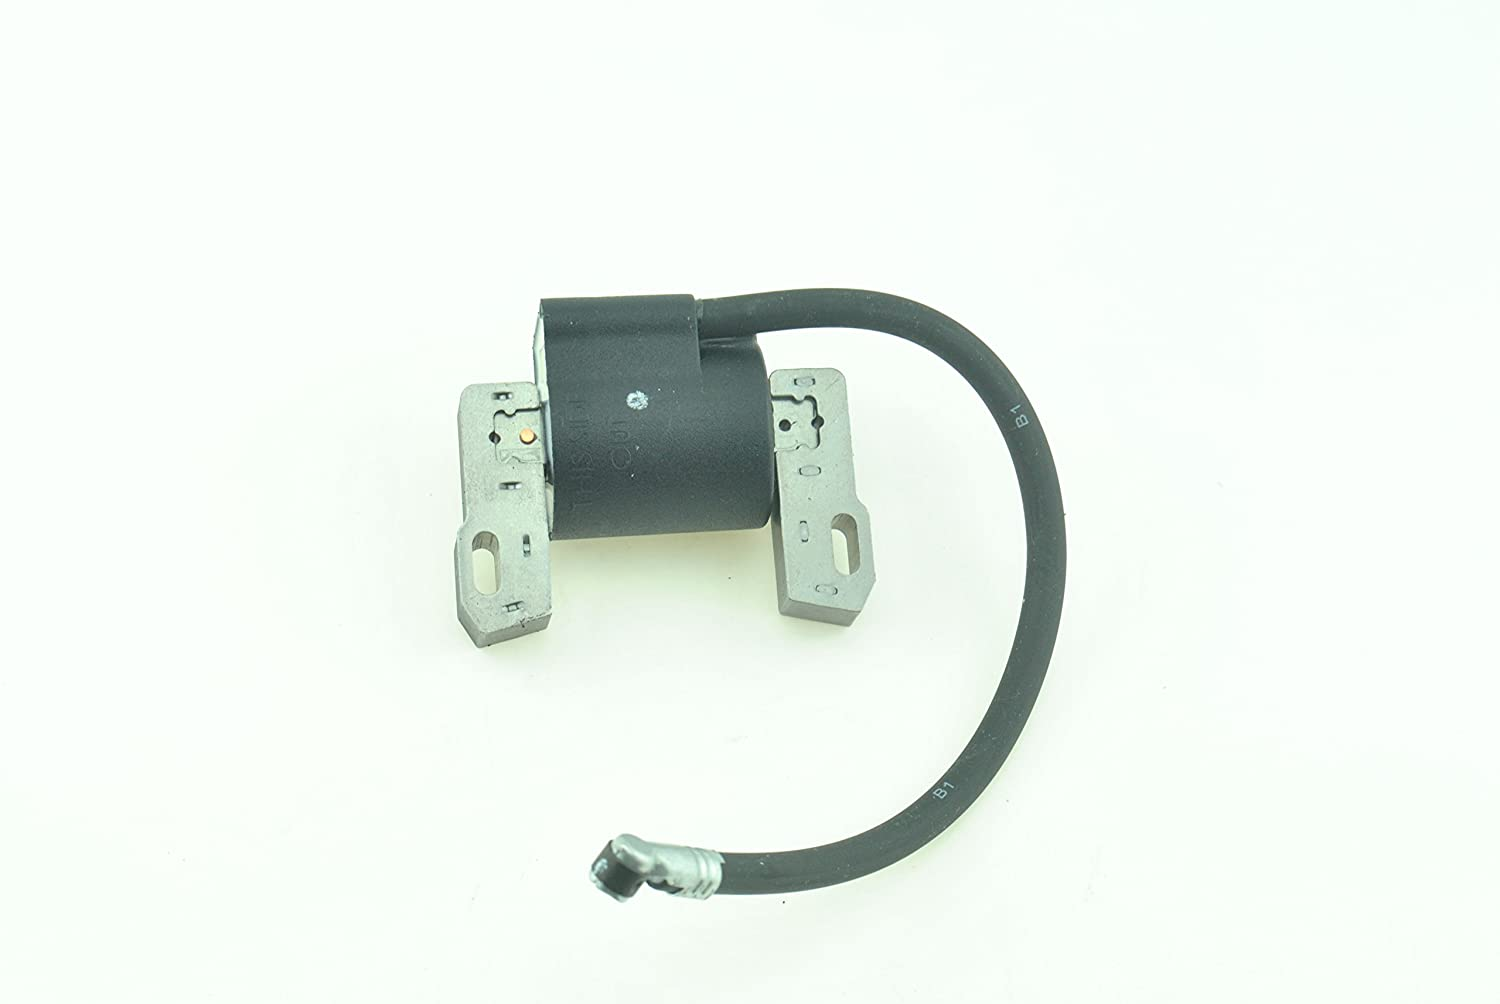 Ignition coil for Briggs/& Stratton 492341 490586 491312 495859 715231 591459 A/&B Motor Parts